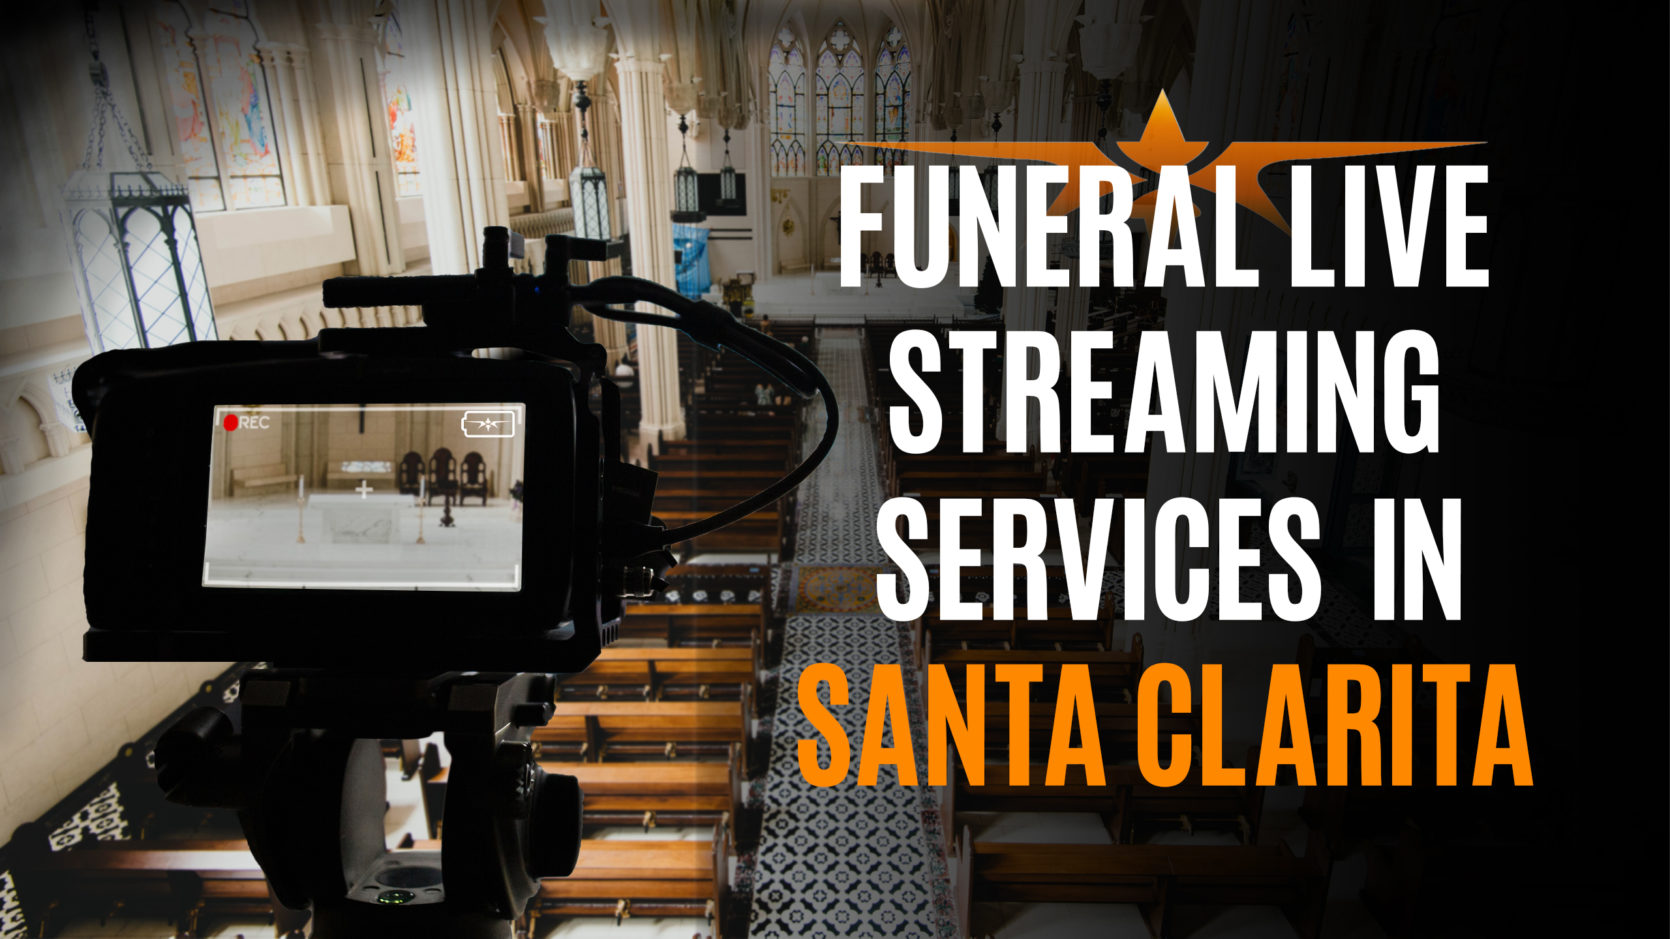 Funeral Live Streaming Services in Santa Clarita